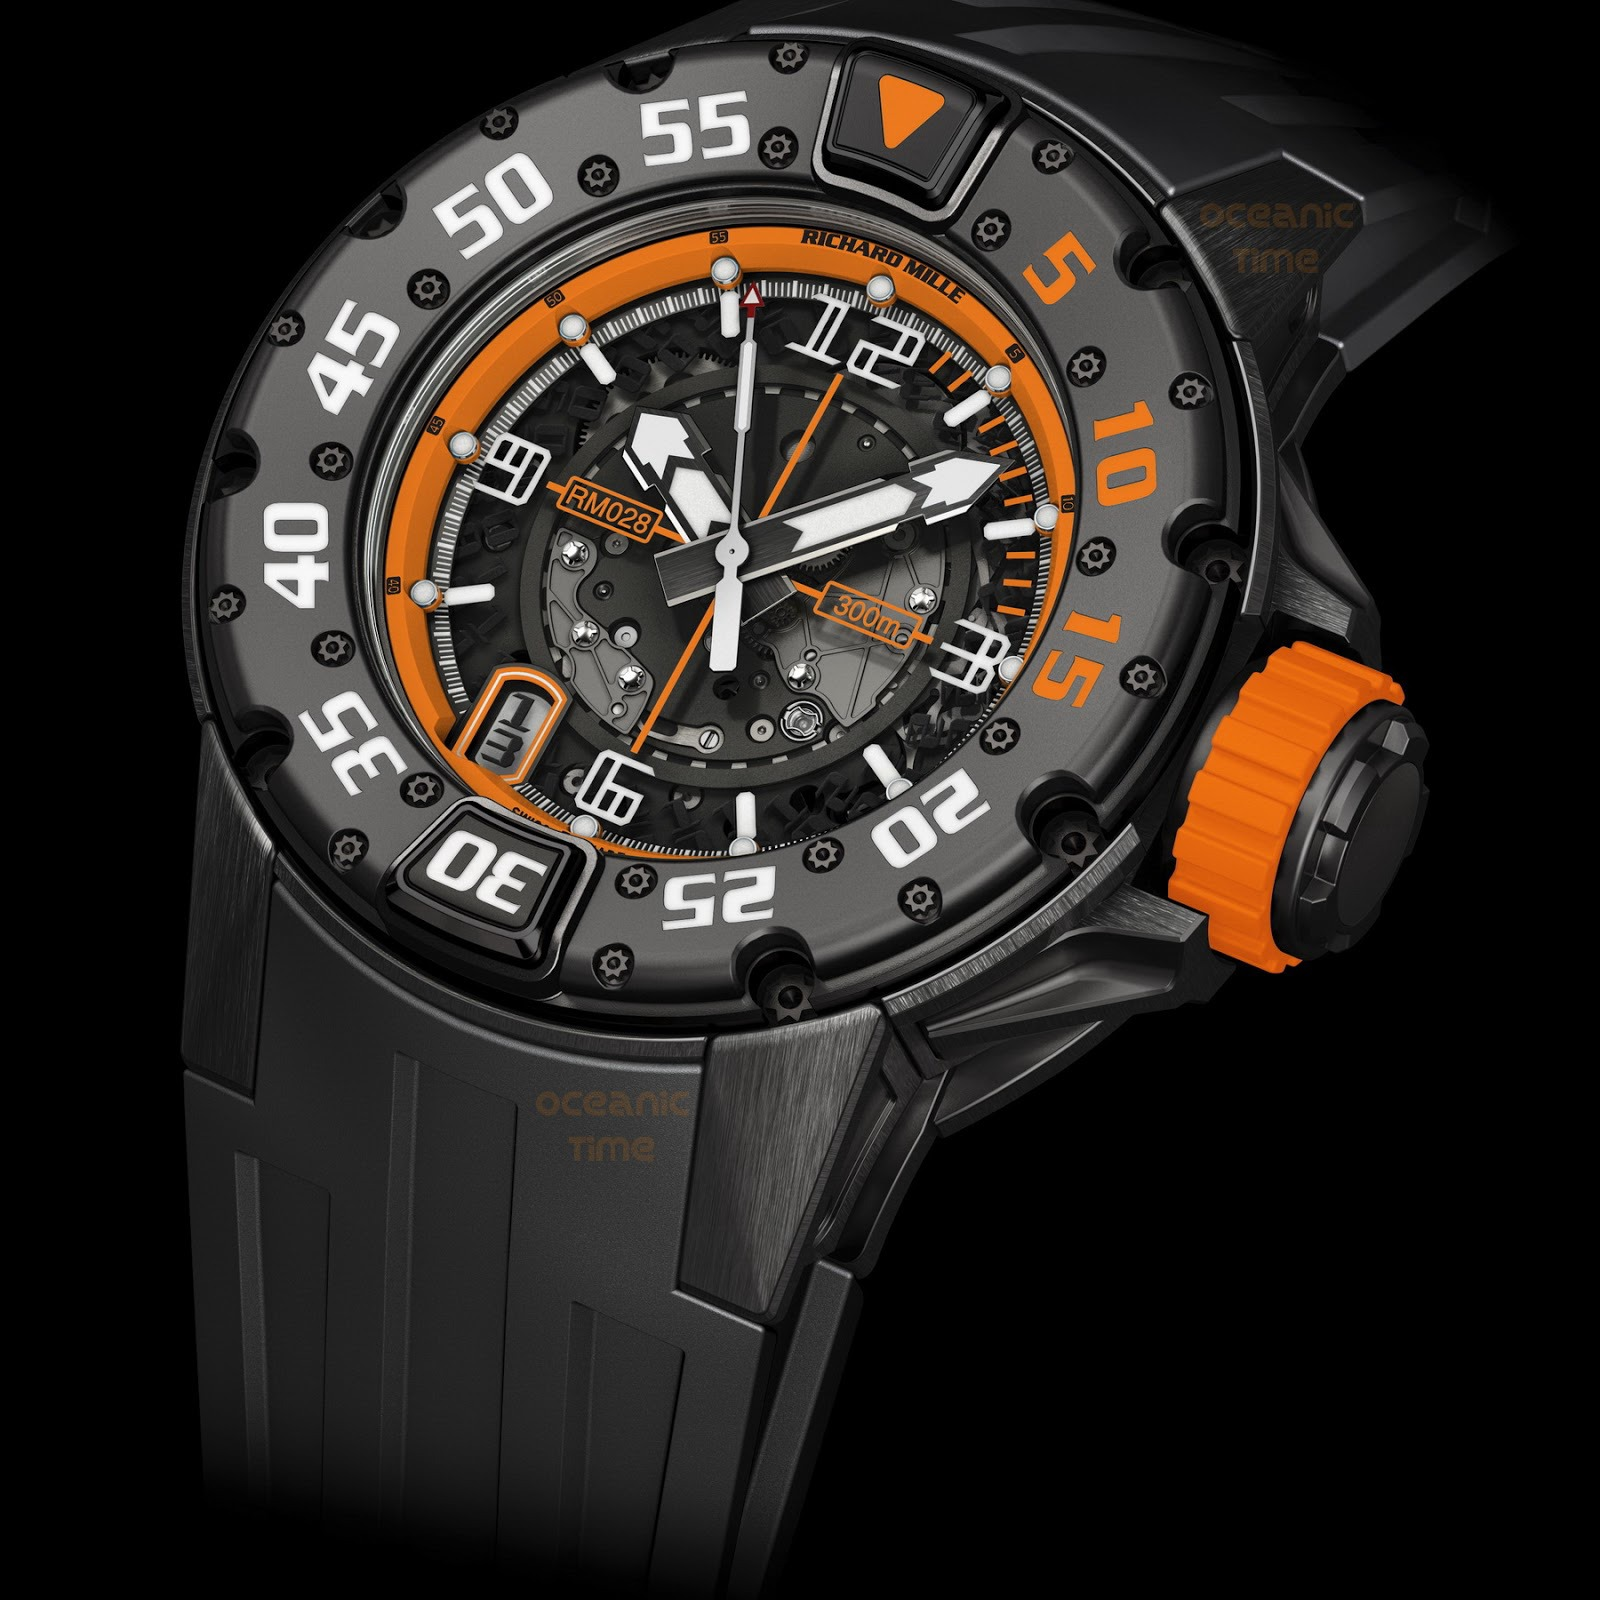 Replica Richard Mille RM 028 Diver Orange Flash Black Titanium Watch